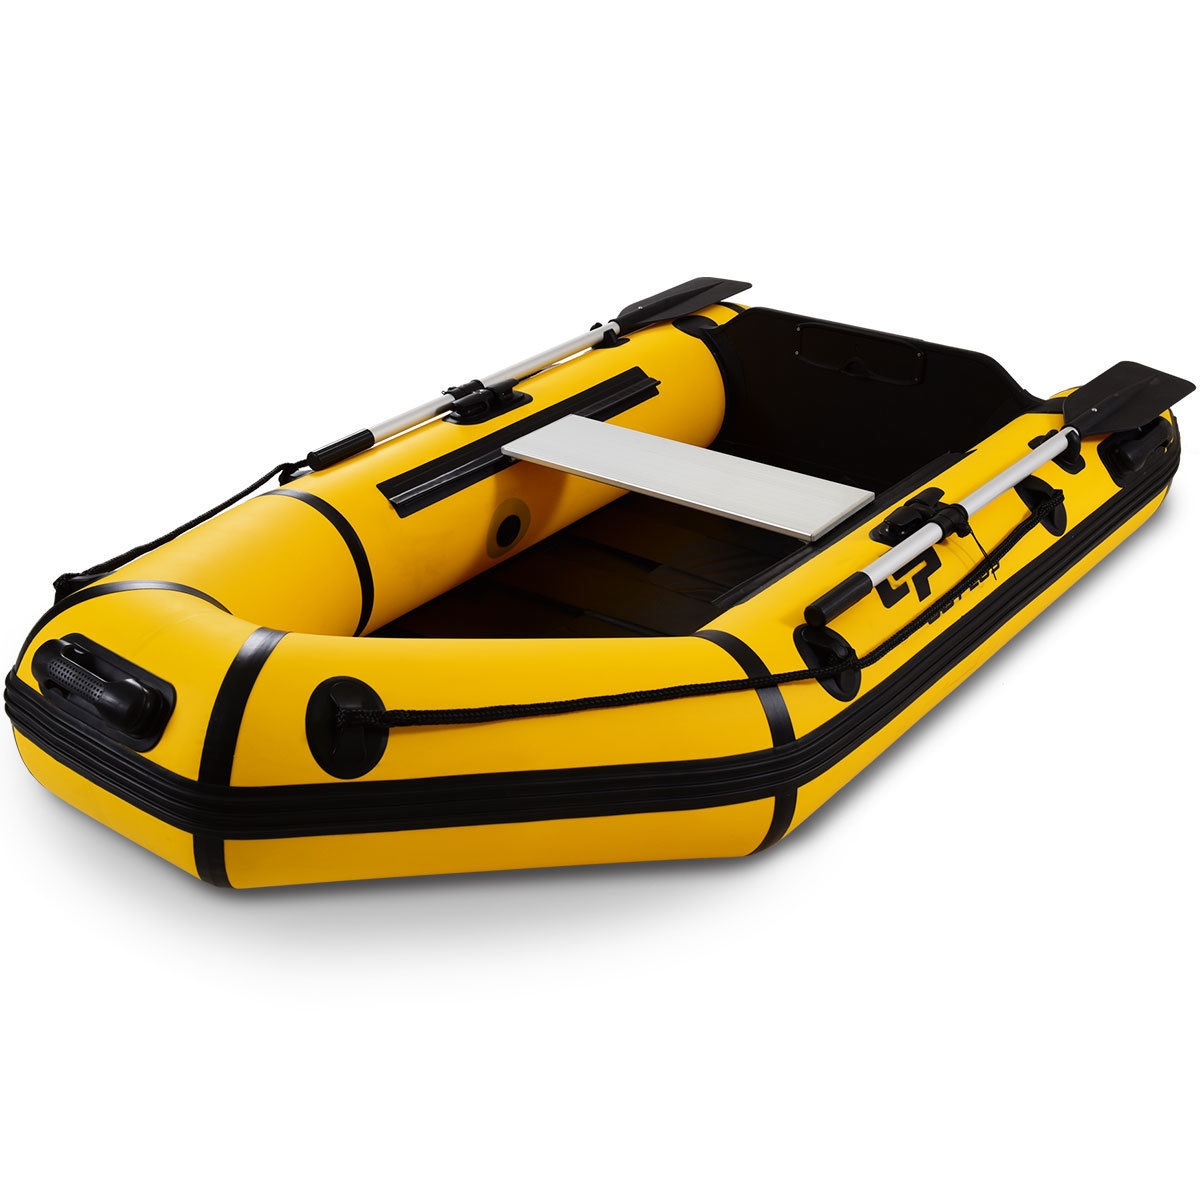 Goplus 2 Person 7.5 ft Inflatable Fishing Tender Rafting Dinghy Boat-Yellow